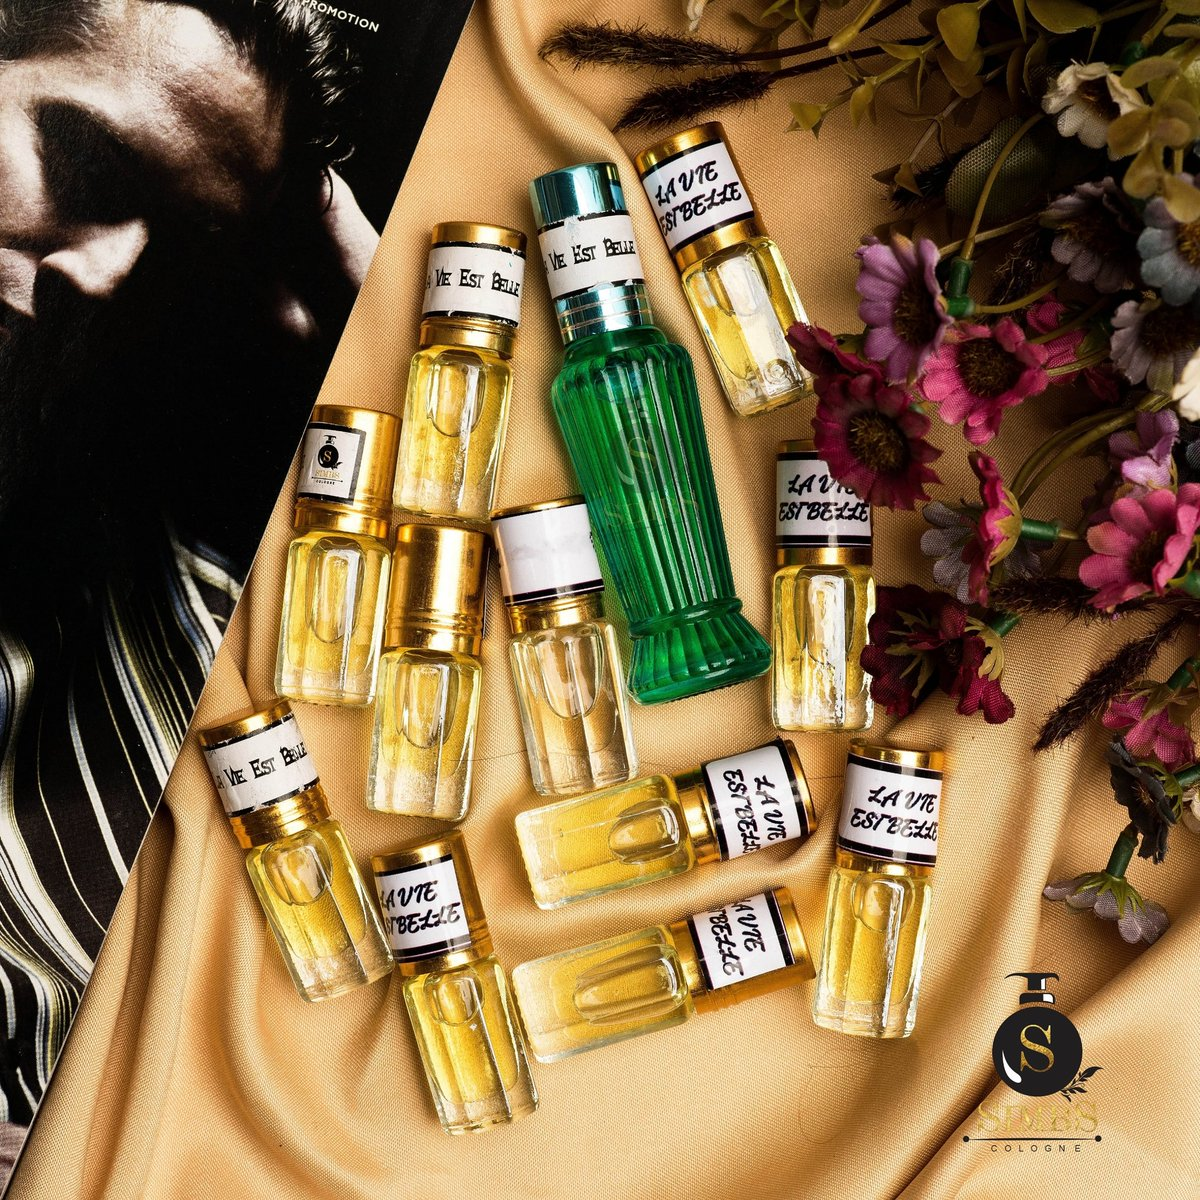 La Vie Est Belle by Lancôme...This is the French word for Life Is Beautiful. It is made with natural precious ingredients, impressive and different. The longevity is excellent .This is the perfect for the woman who wants to smell classy and elegant  5ml for 1000 20ml for 5000 https://t.co/j3XEqSZP9f